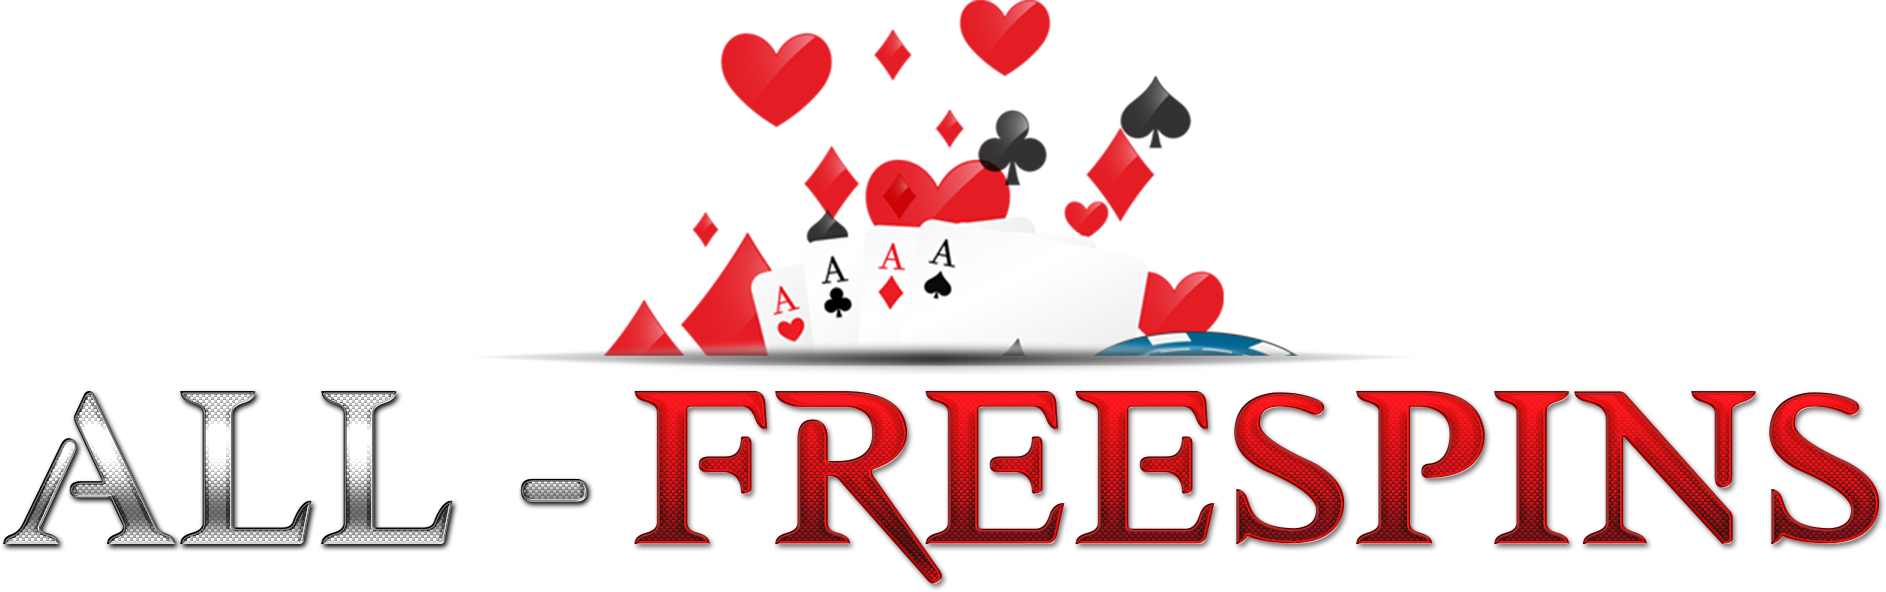 Tryggeste casinoguide for Norske Online Casino